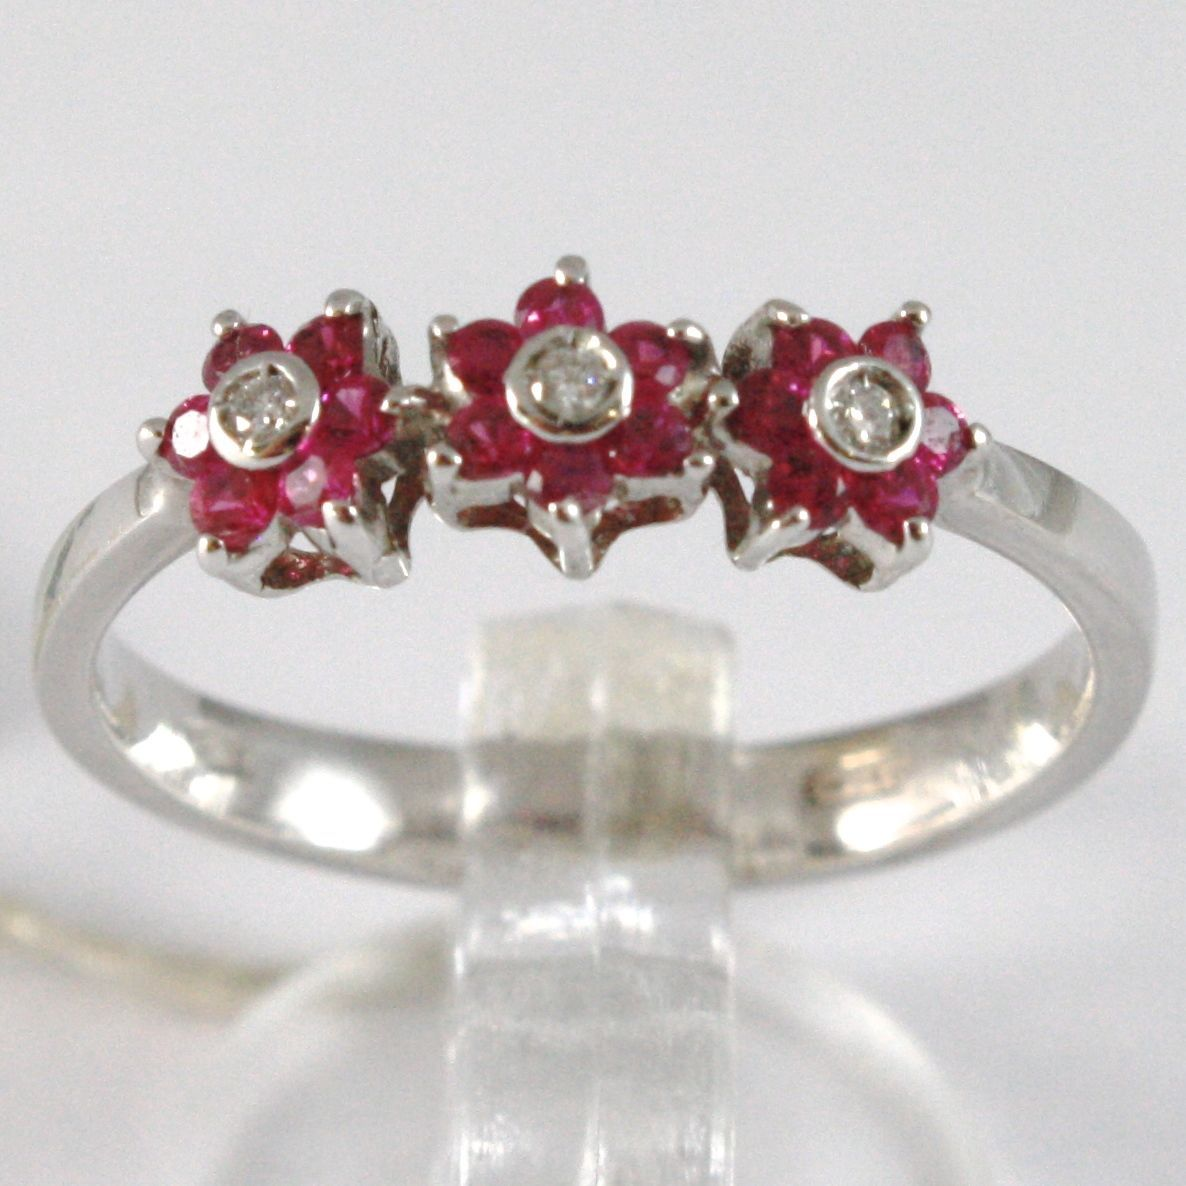 WHITE GOLD RING 750 18K, TRILOGY ROSETTA, FLOWERS WITH RUBIES AND DIAMONDS